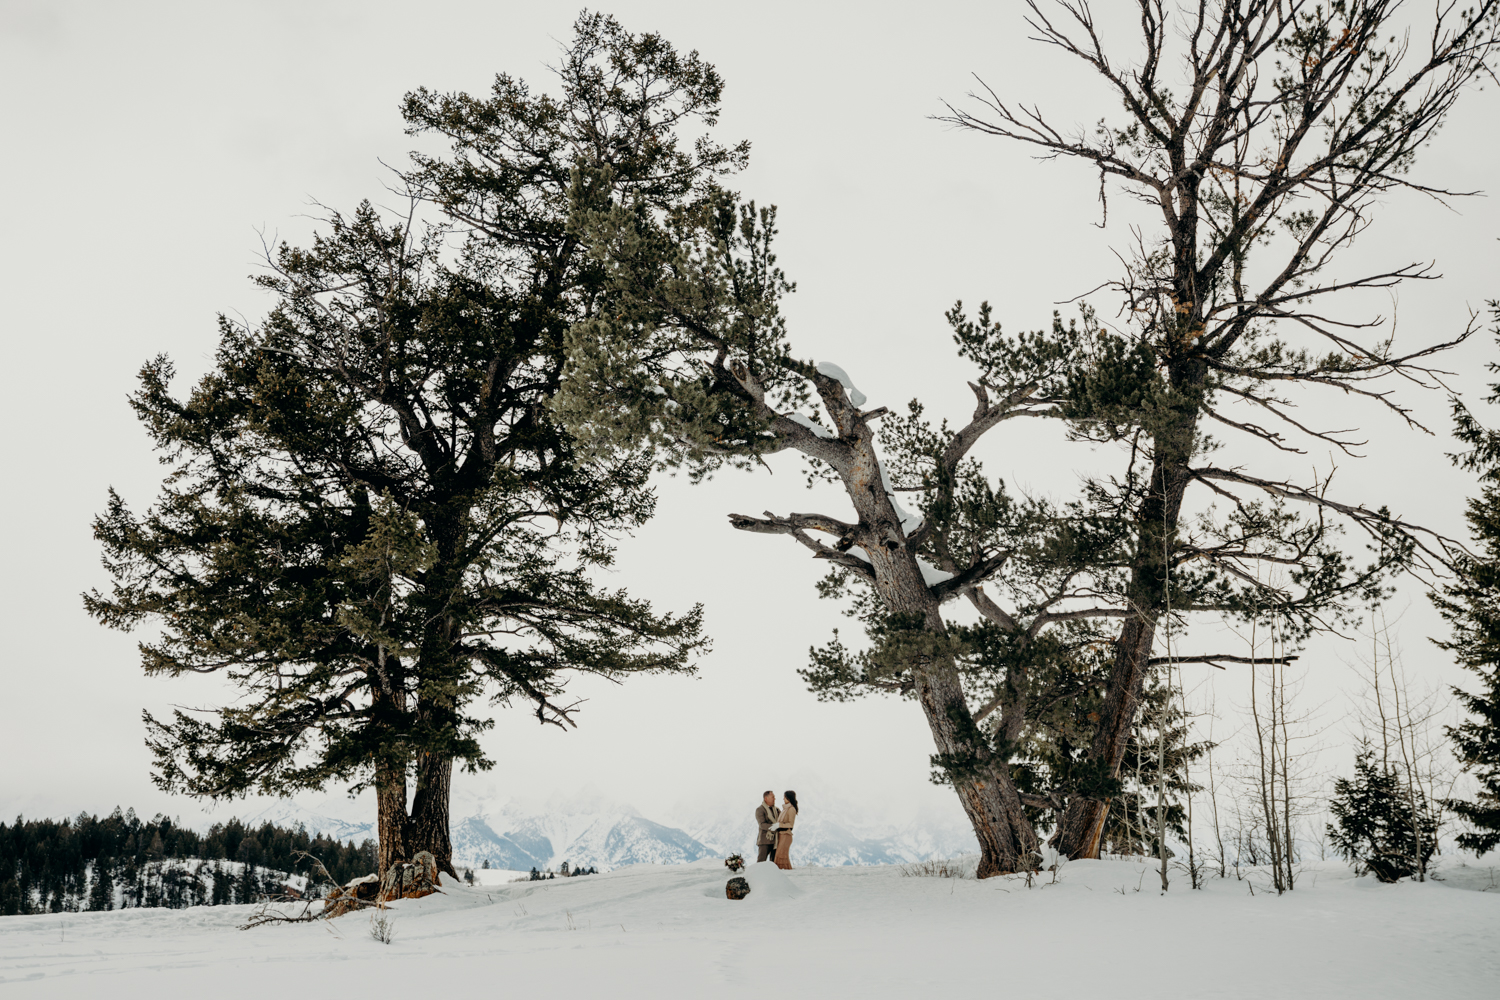 Grand Teton National Park Elopement at the Wedding Tree during the Winter